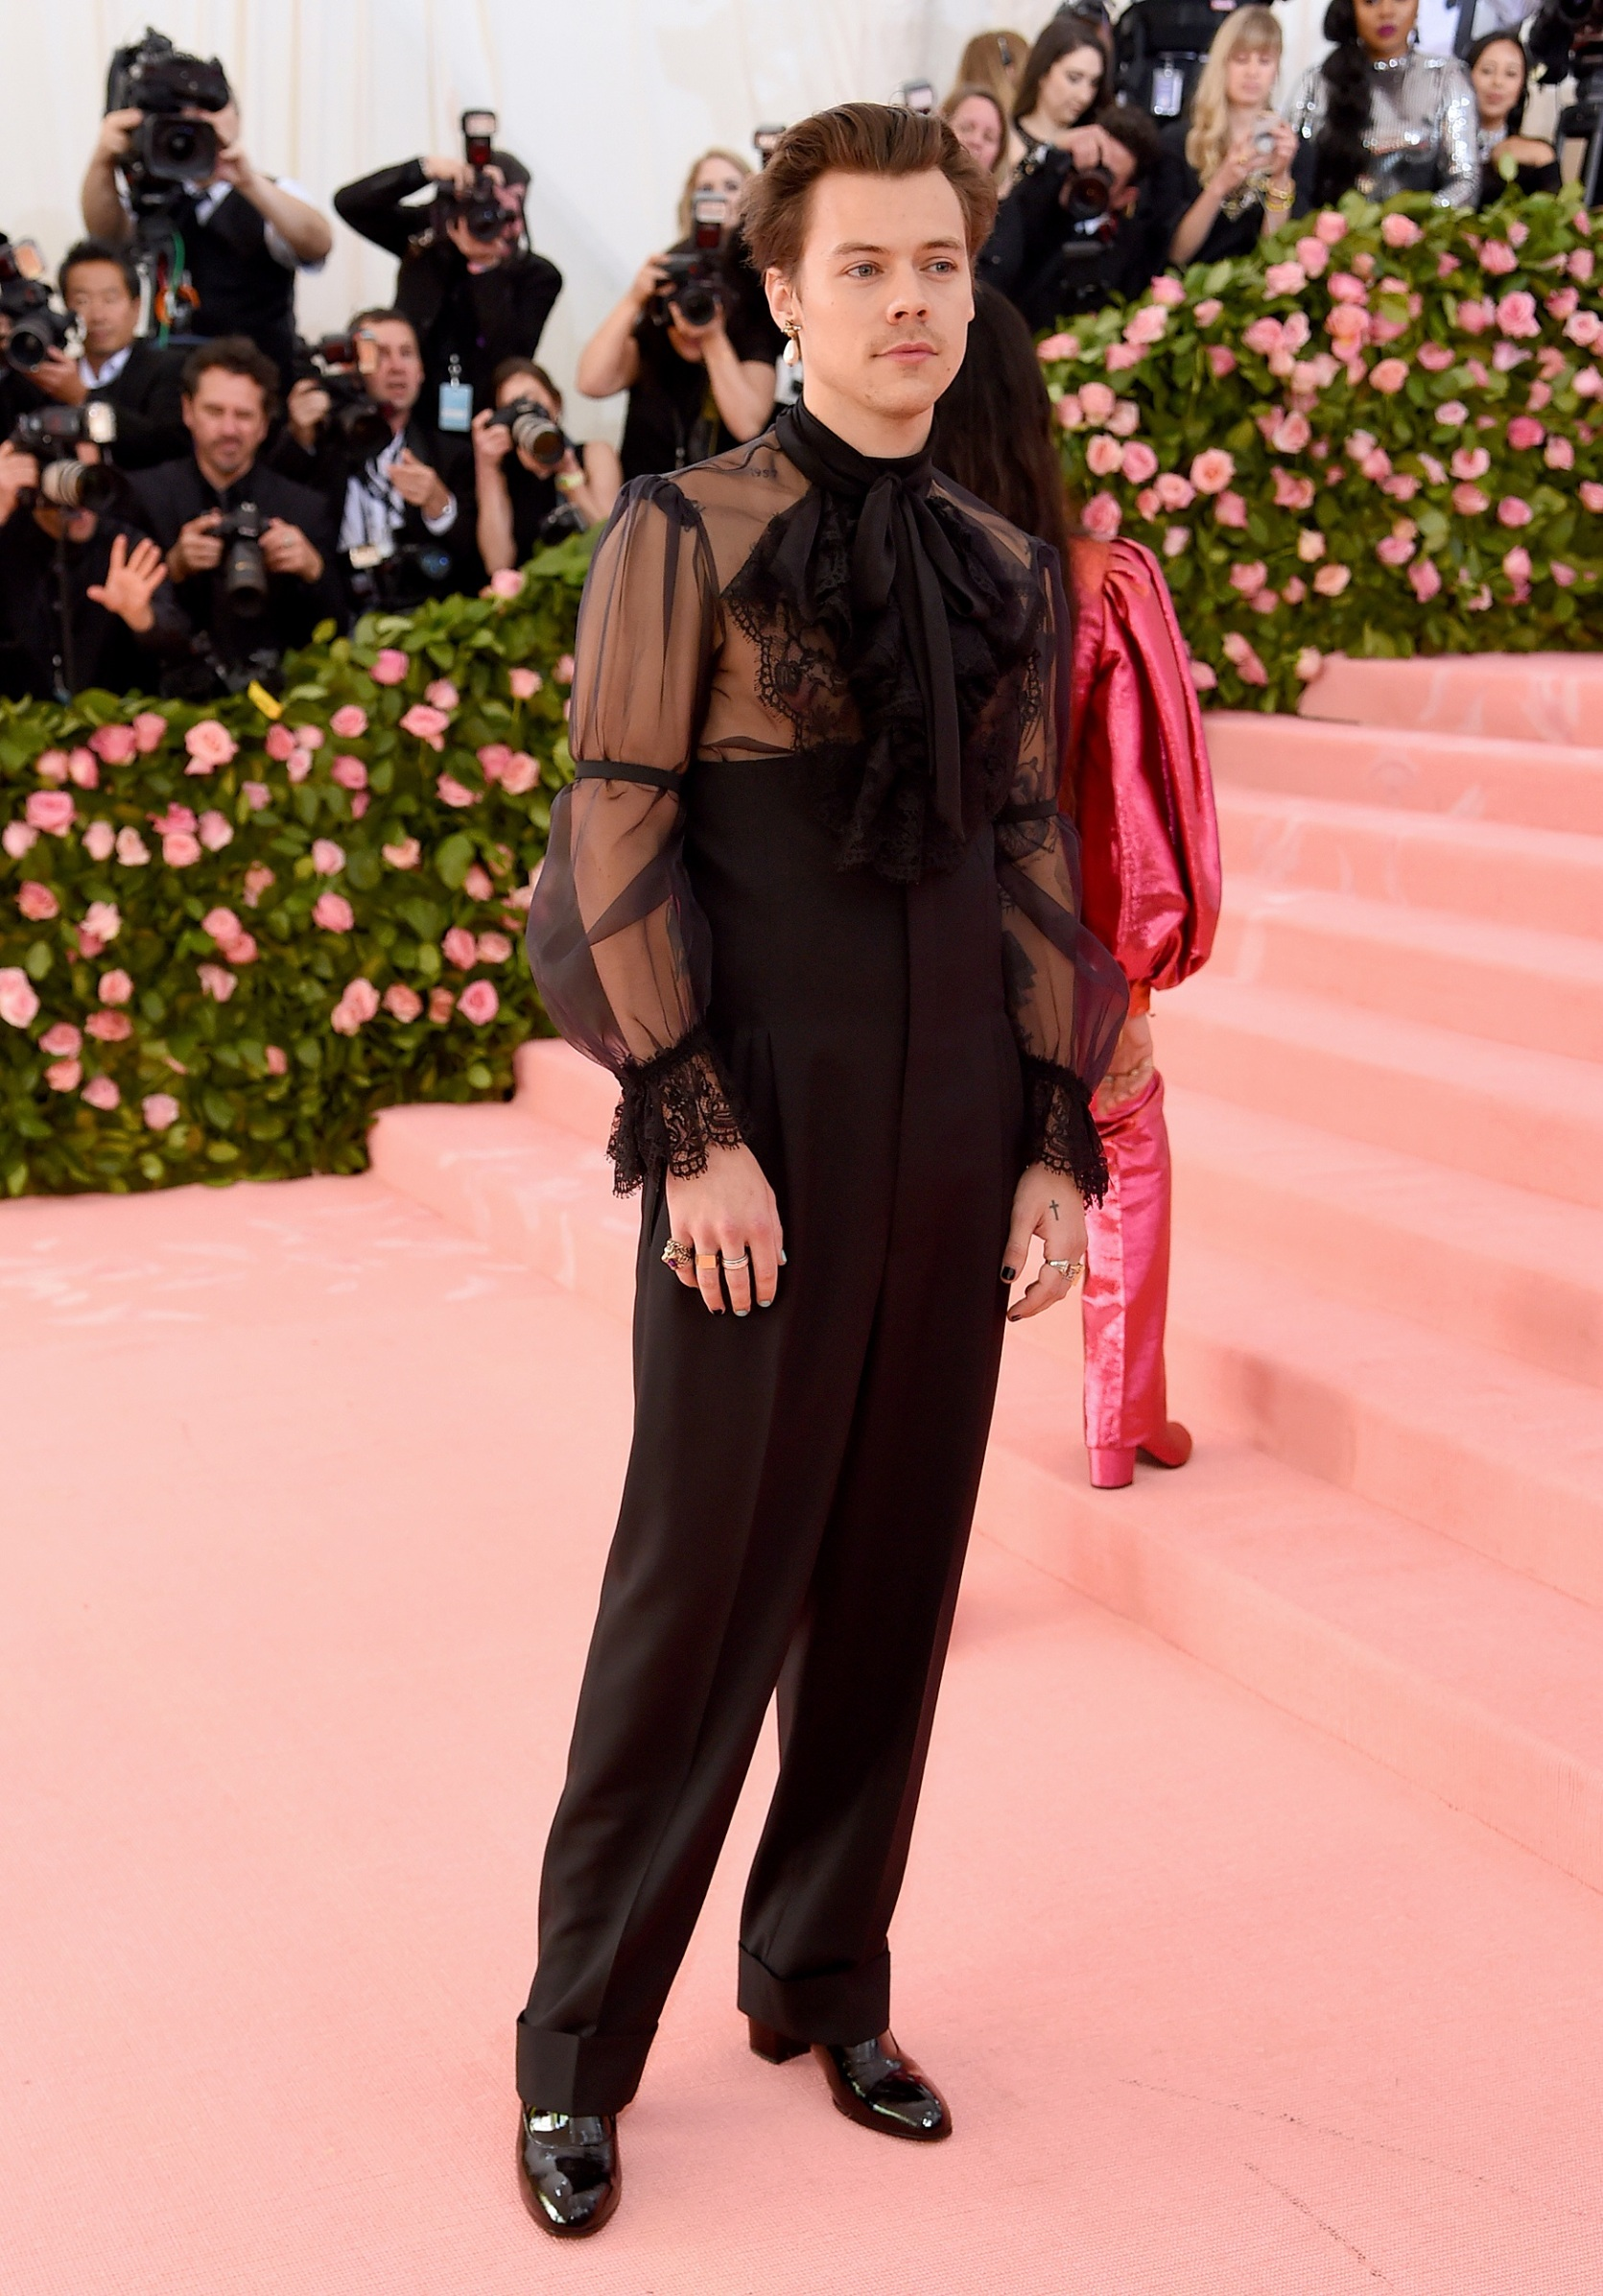 NEW YORK, NEW YORK - MAY 06: Harry Styles attends The 2019 Met Gala Celebrating Camp: Notes on Fashion at Metropolitan Museum of Art on May 06, 2019 in New York City. (Photo by Jamie McCarthy/Getty Images)